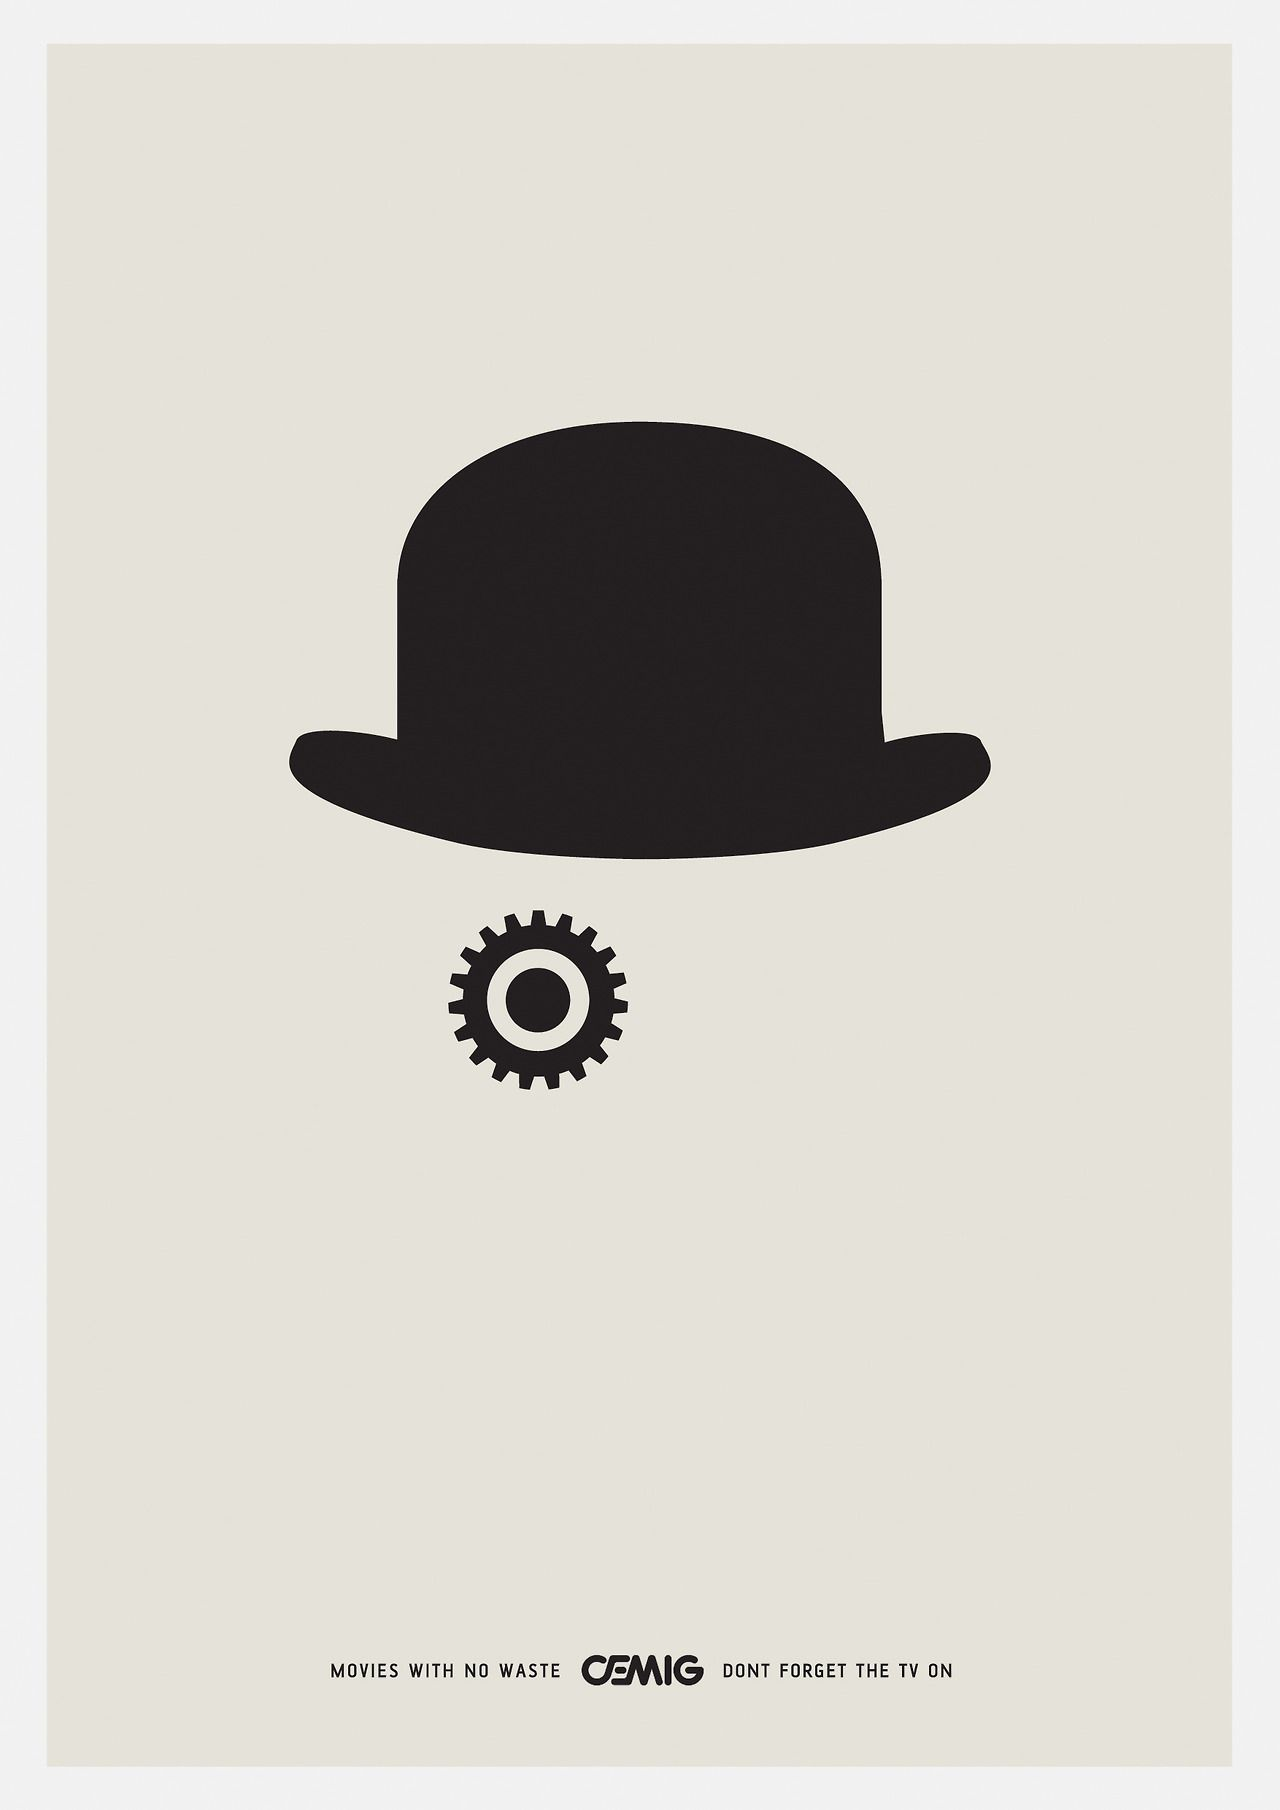 A Clockwork Orange. #minimal #design | 23June13 ... A Clockwork Orange Minimalist Poster